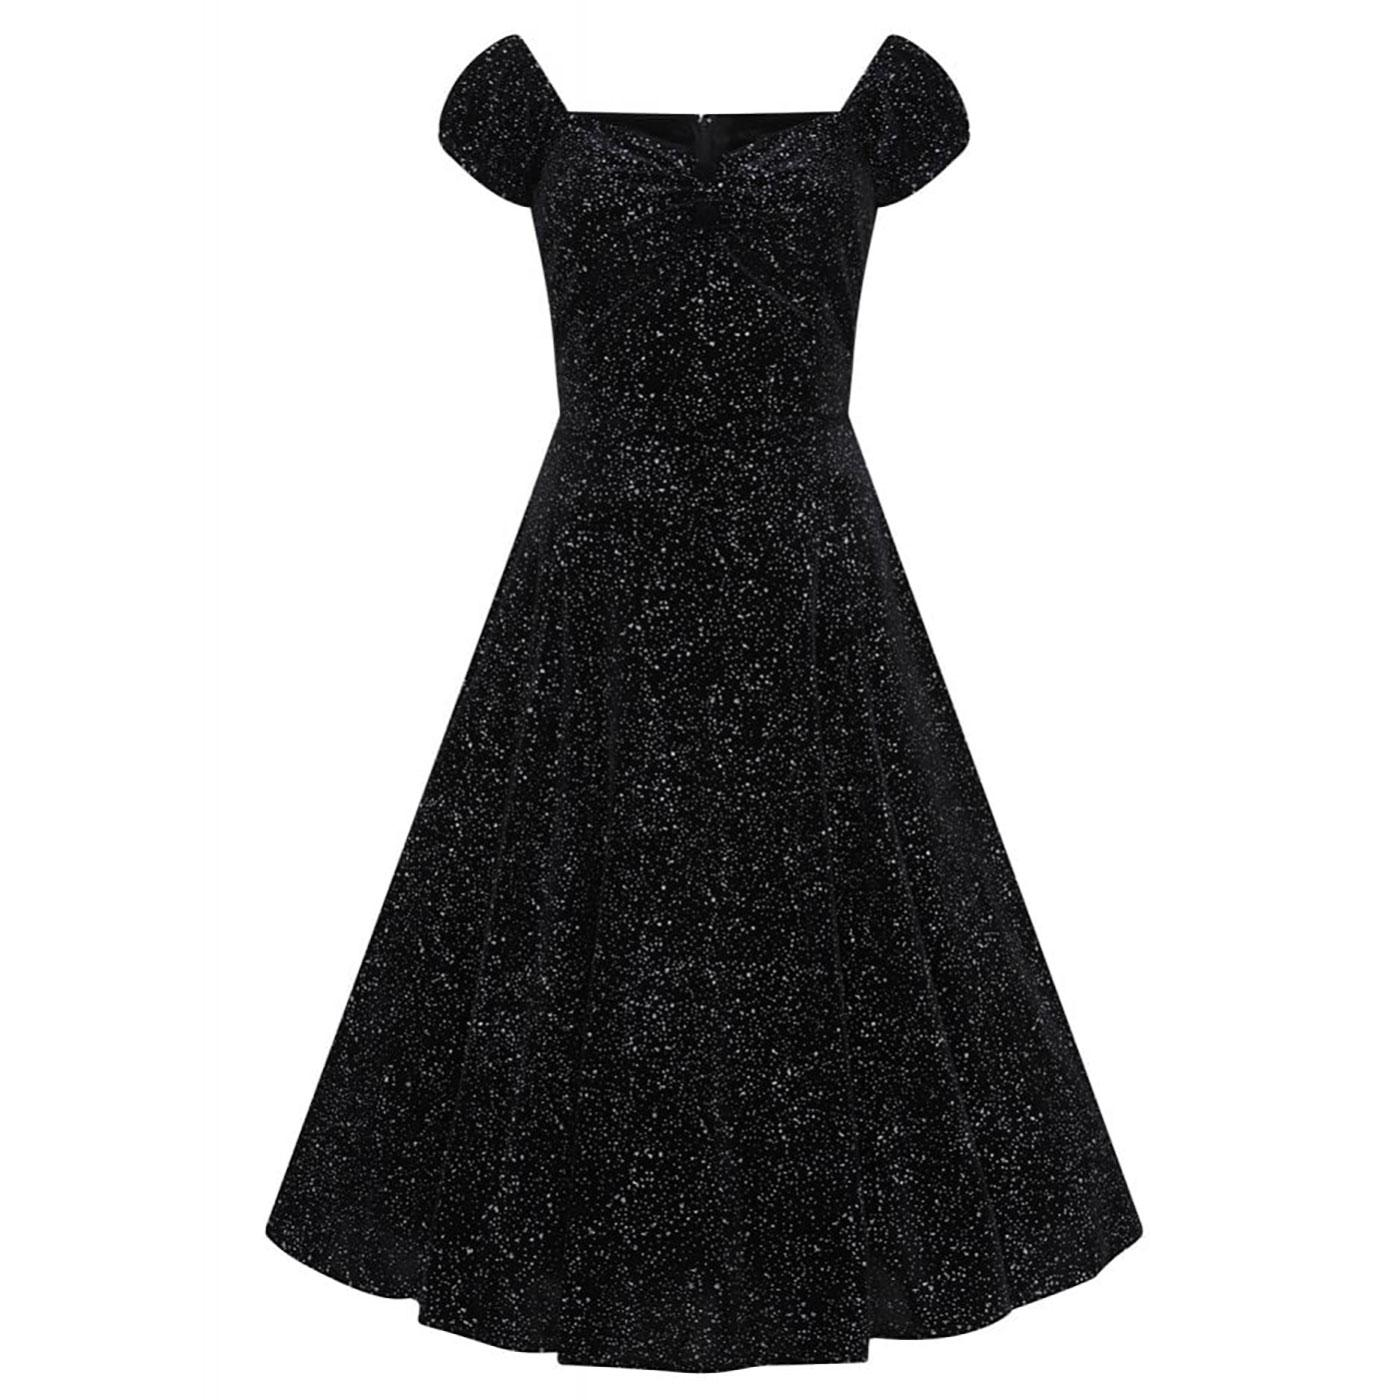 Dolores COLLECTIF Glitter Drops 1950s Doll Dress